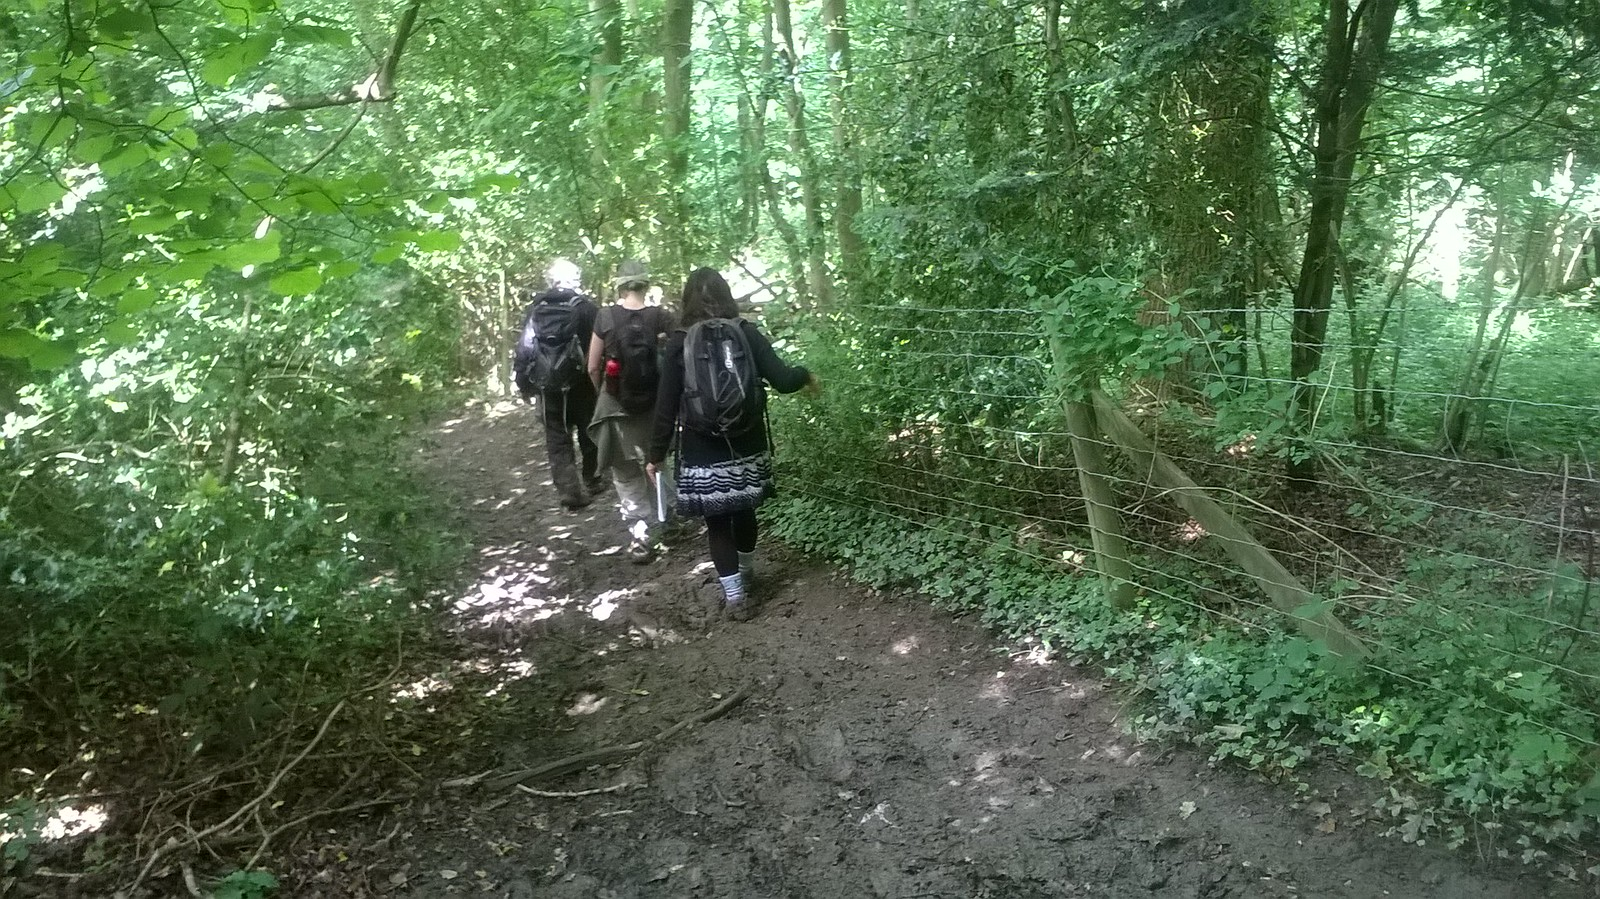 Cautious descent Near Hurst Wood, Kent